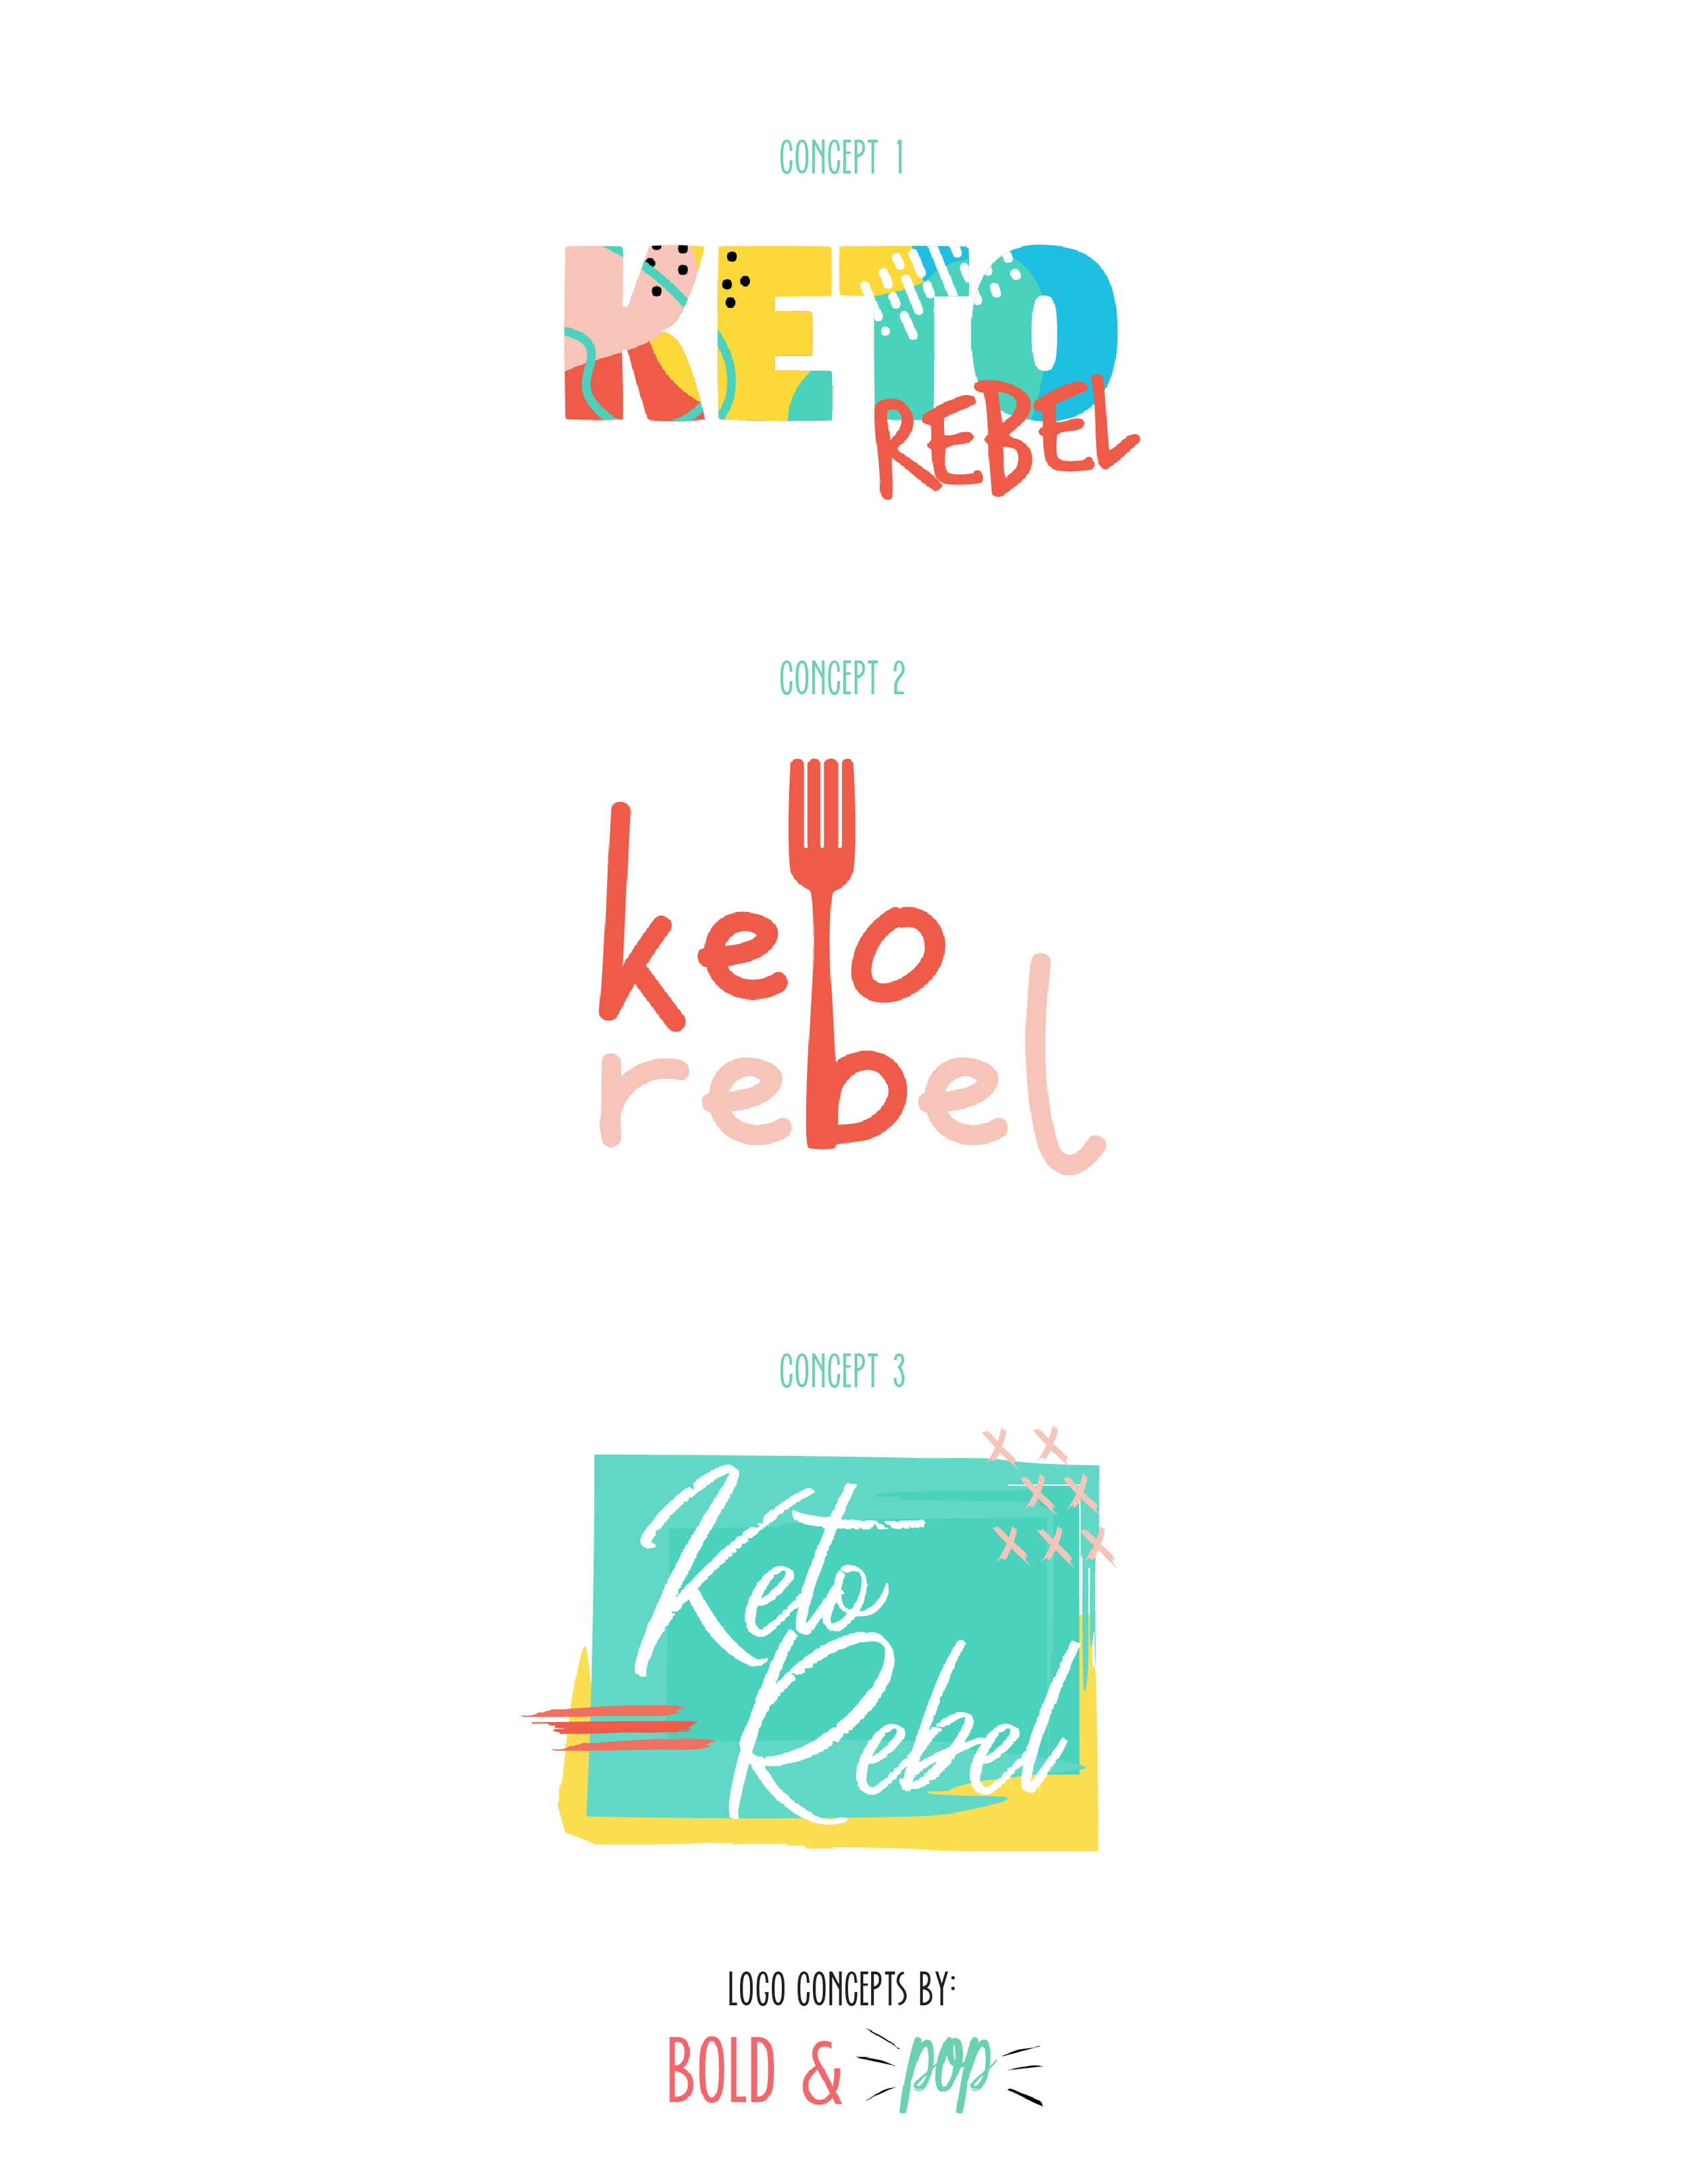 Bold & Pop : Keto Rebel Foot and Health Blogger and Influencer Branding Design